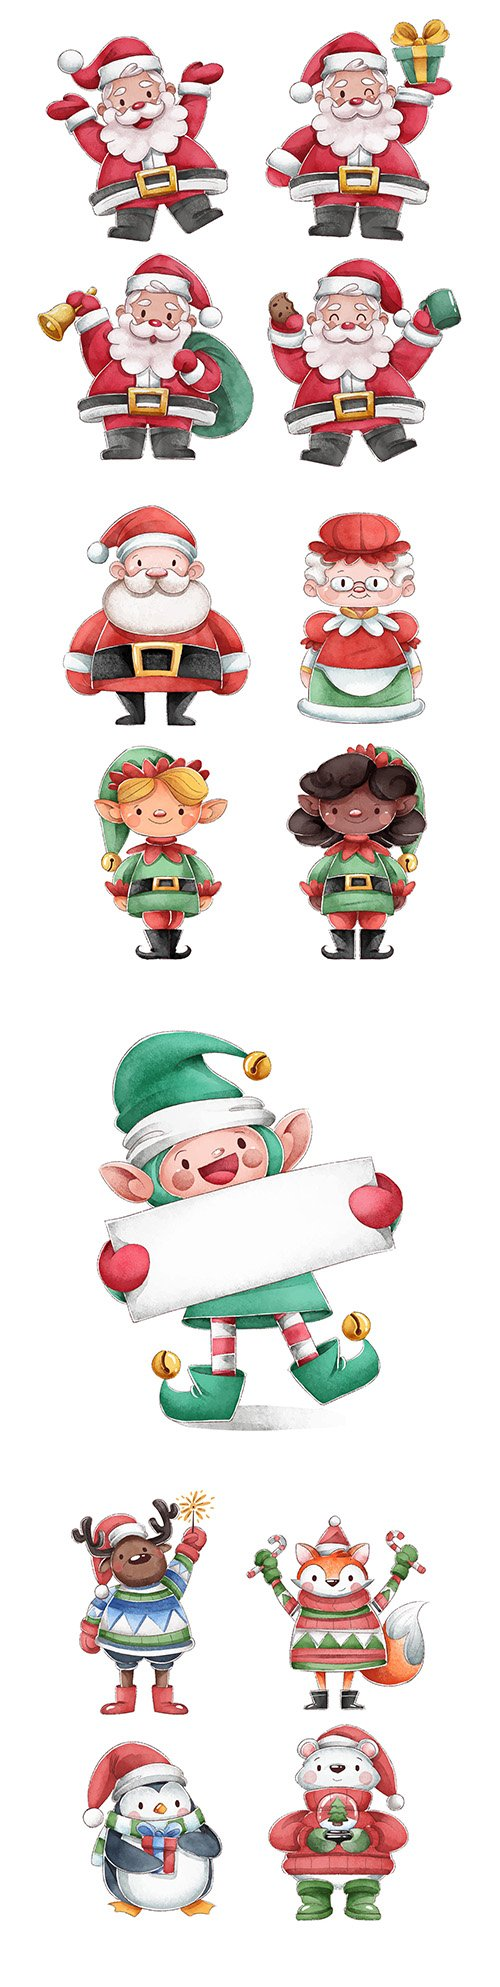 Funny Santa Claus and his friends watercolor illustrations